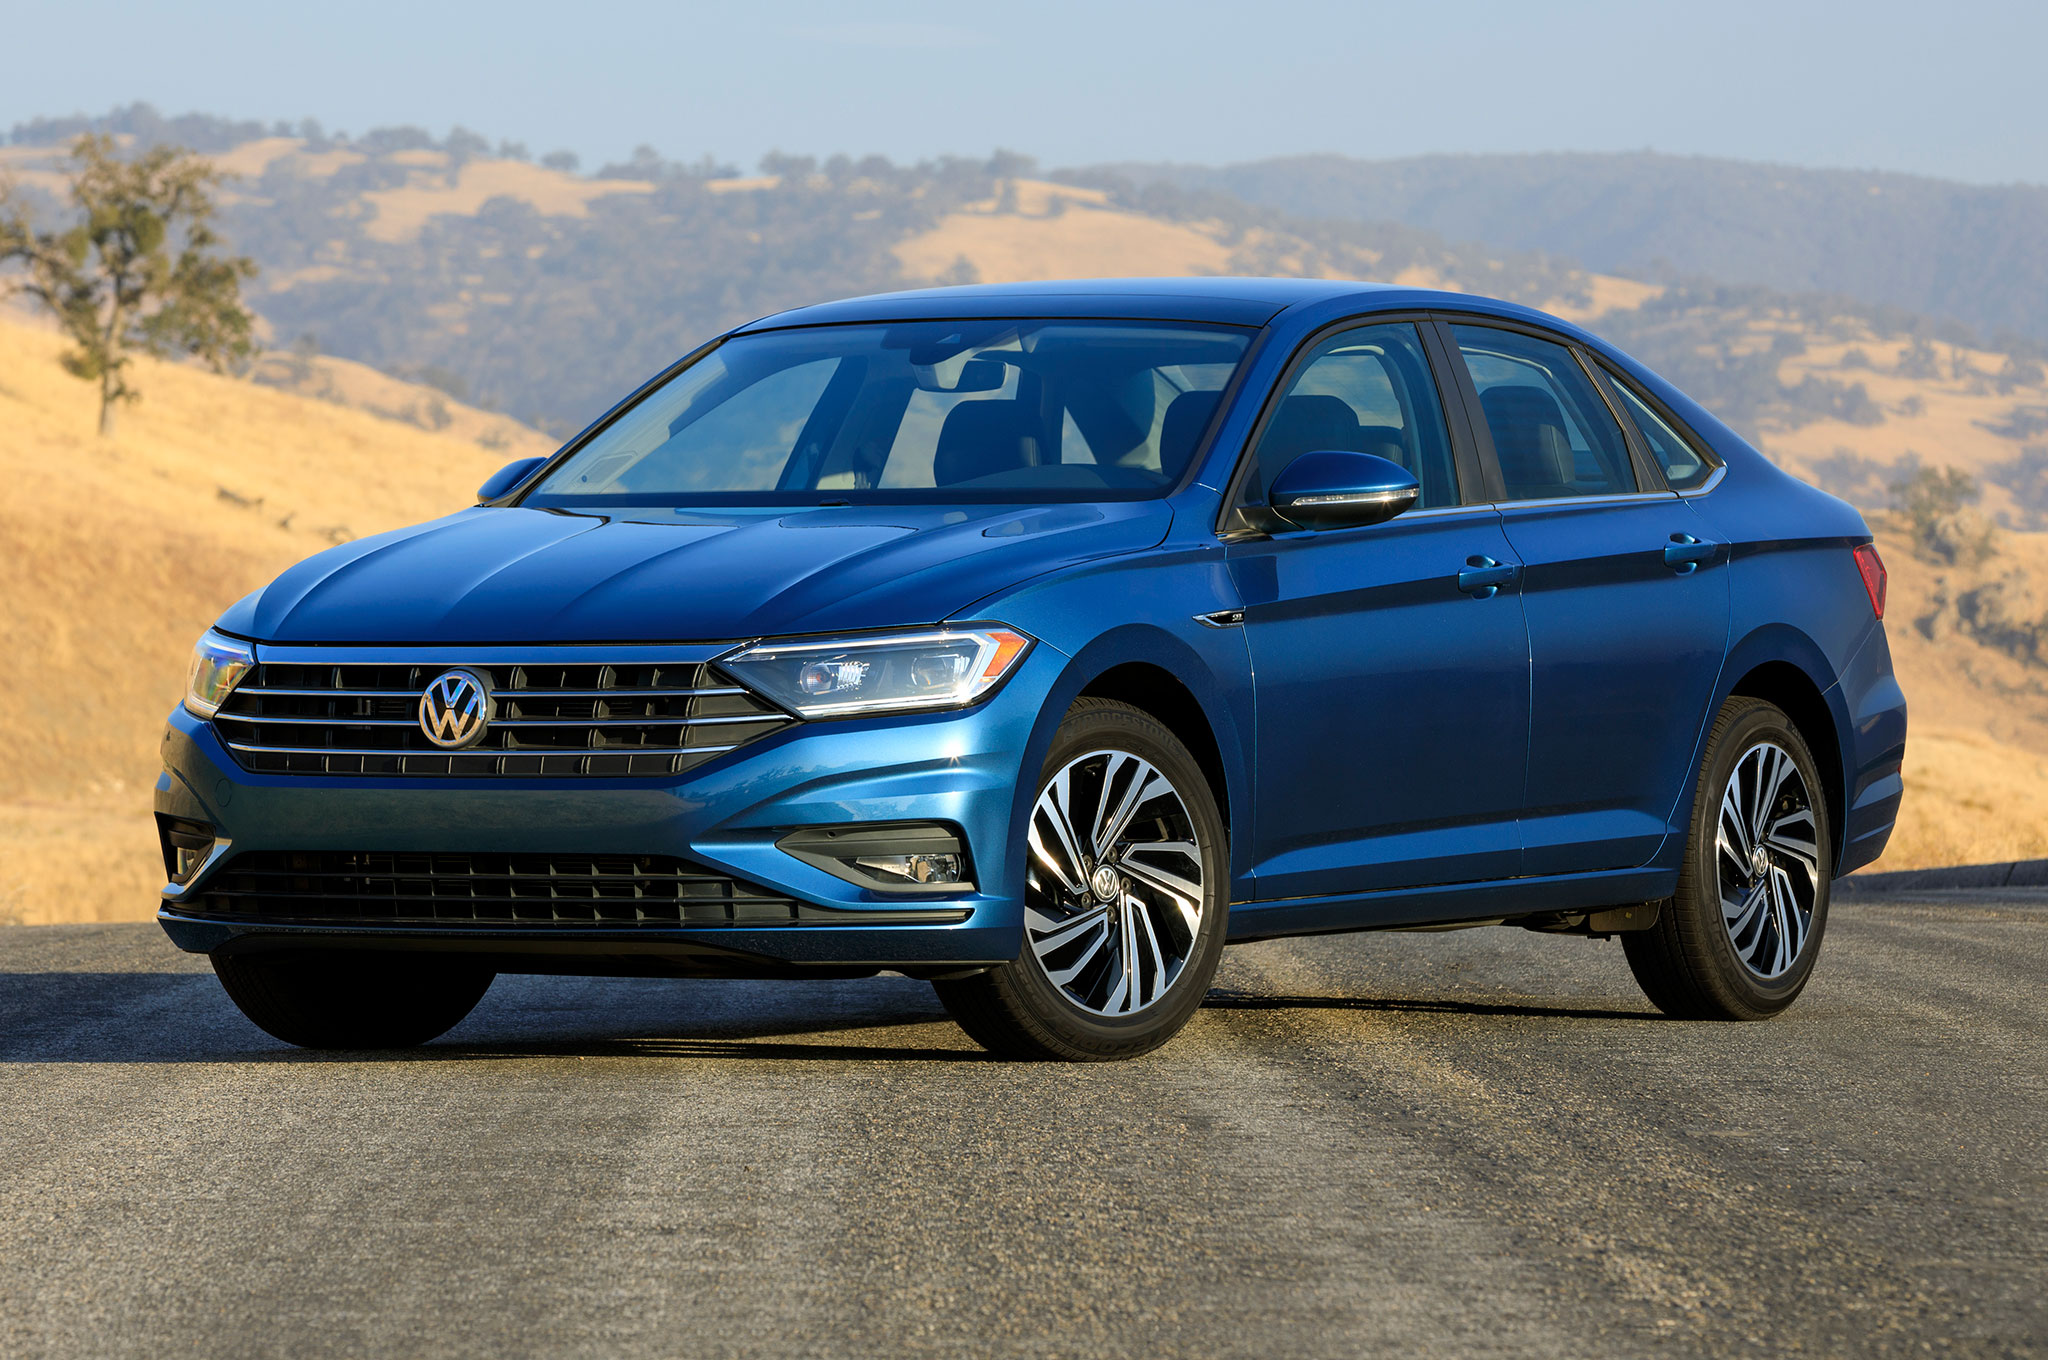 2019 Volkswagen Jetta SEL Front Side View Parked